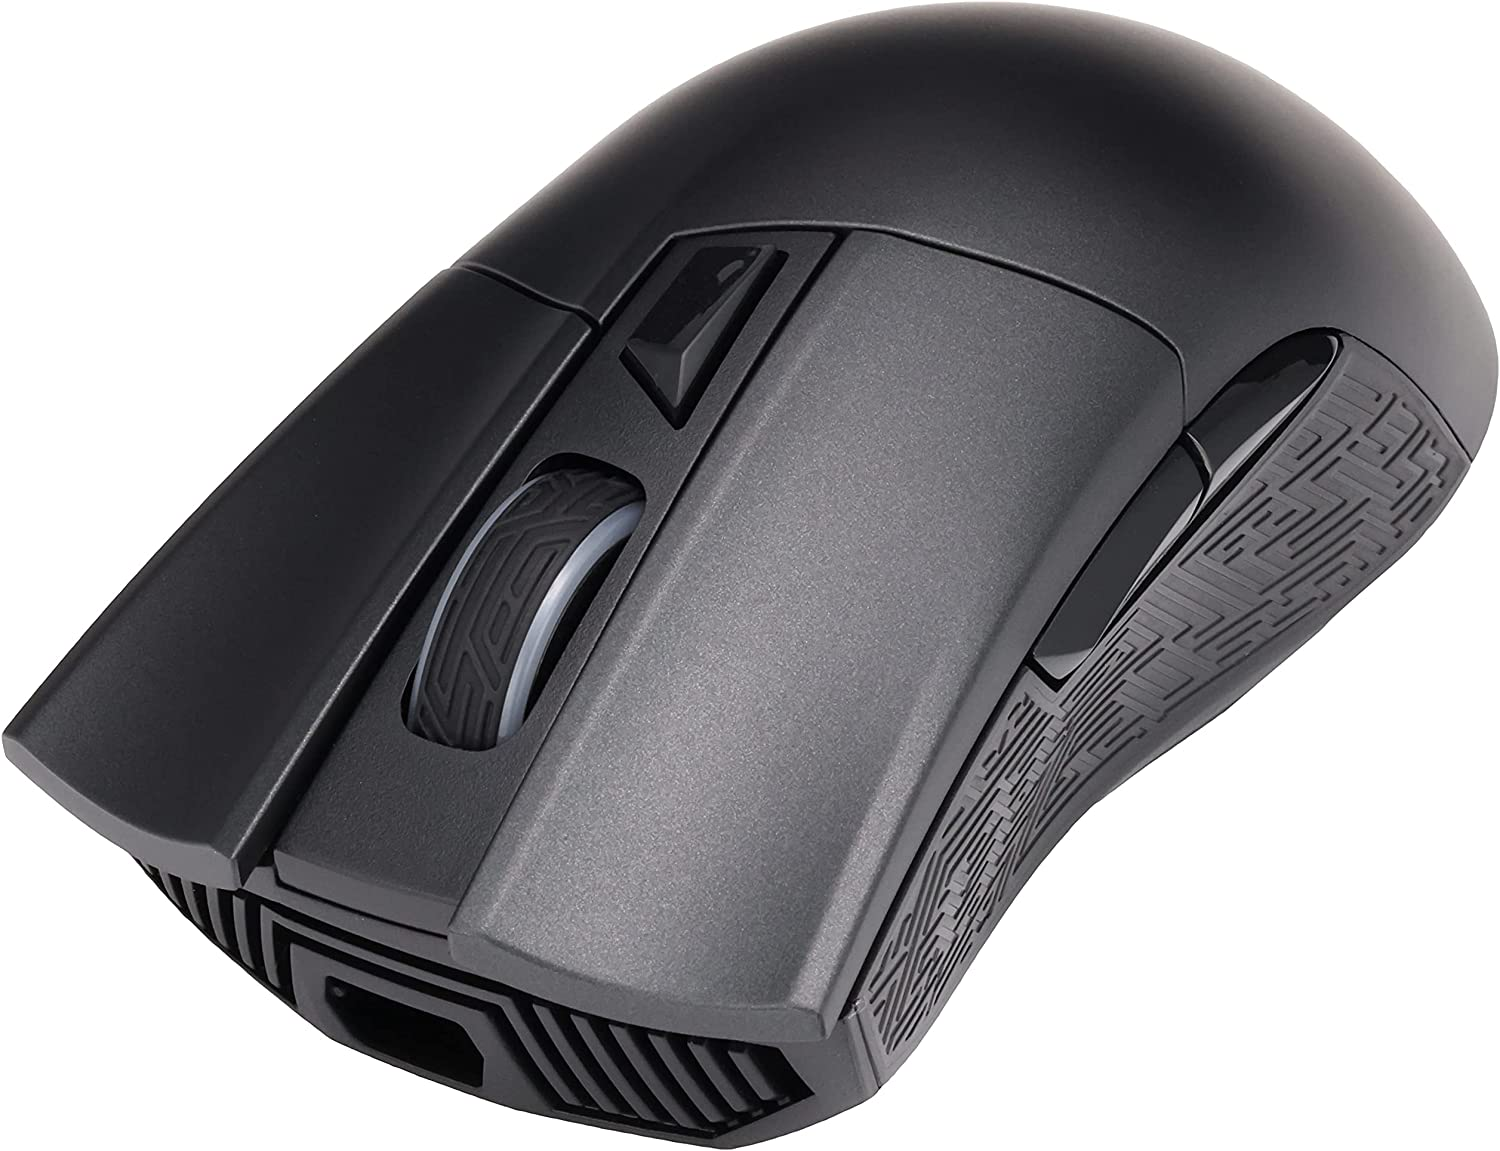 ASUS Wireless Optical Gaming Mouse for PC - ROG Gladius II | Right-hand Grip | 12000 DPI Optical Sensor, 400 IPS, Omron Switches | 6 Programmable Buttons | Aura Sync RGB Lighting, ROG Armoury II